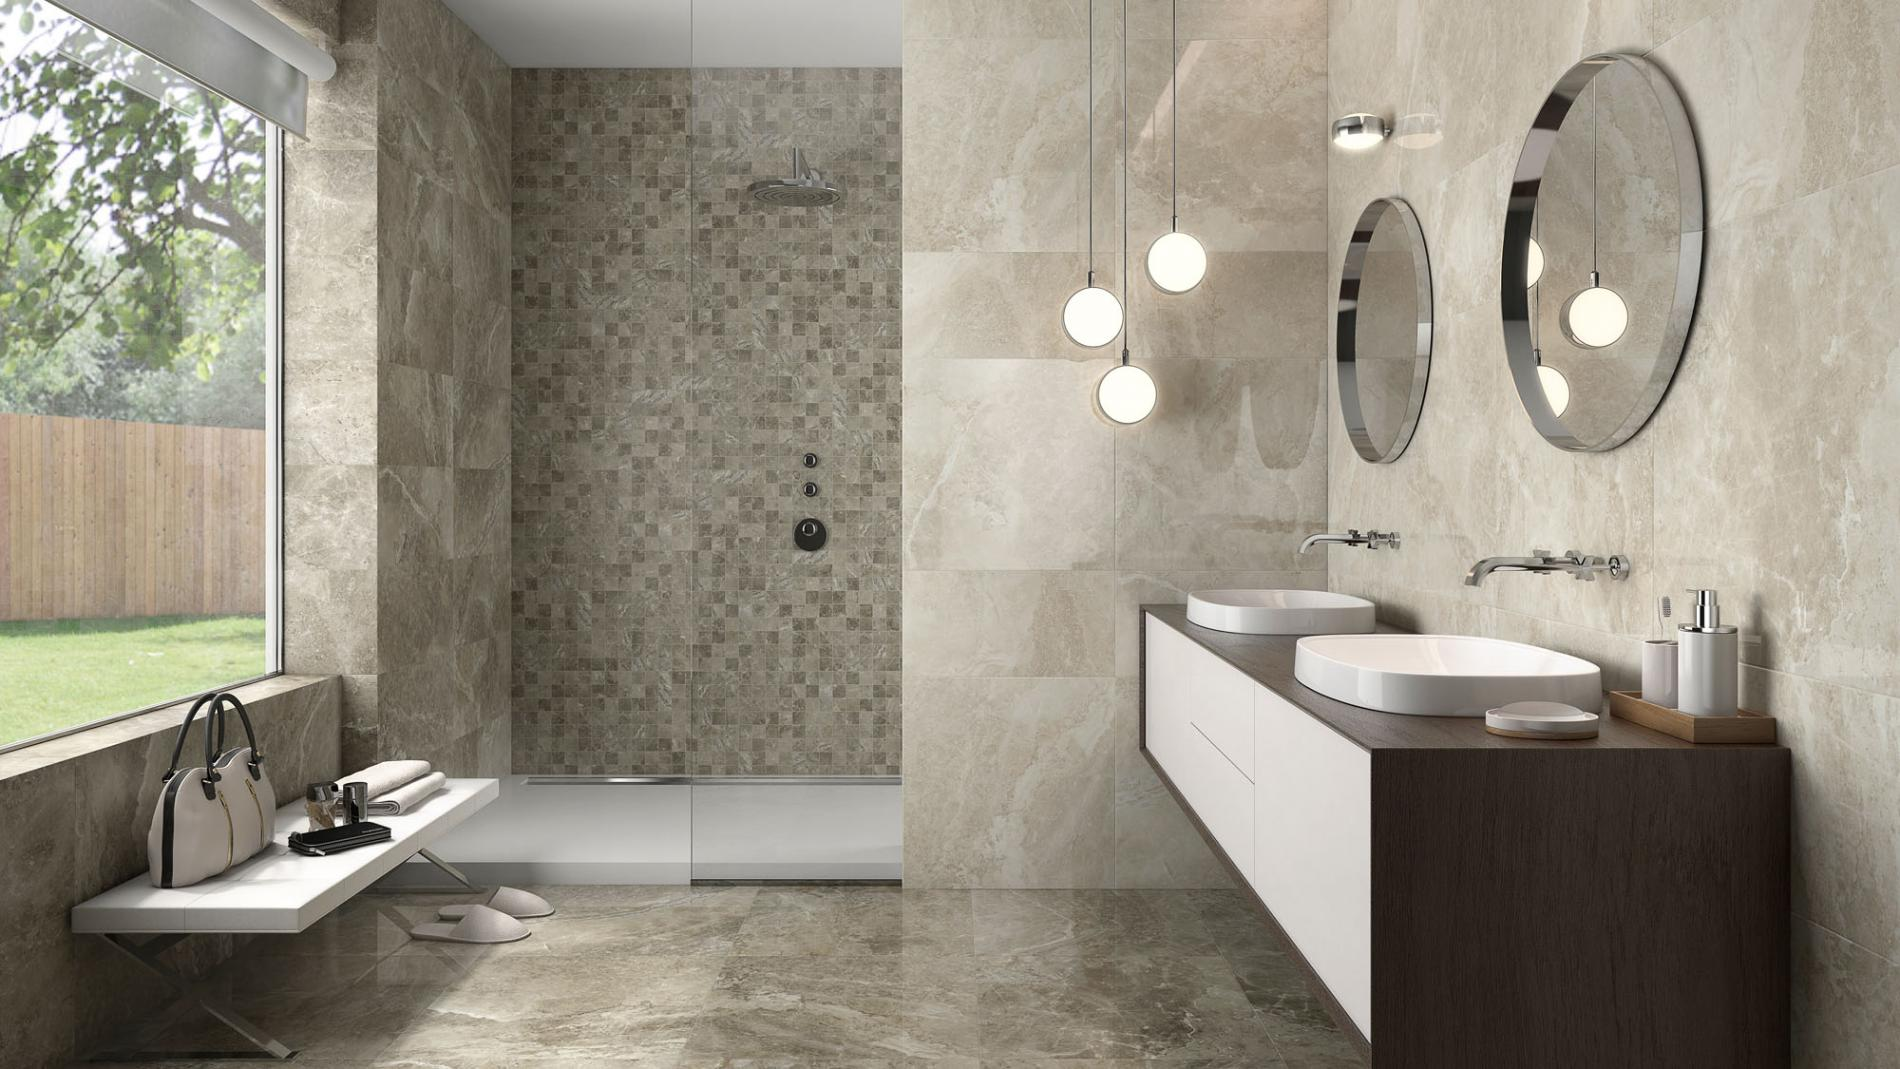 pam1900x172 Tiles dublin waterloo bathrooms commercial contracts ireland supply and fit luxury.jpg